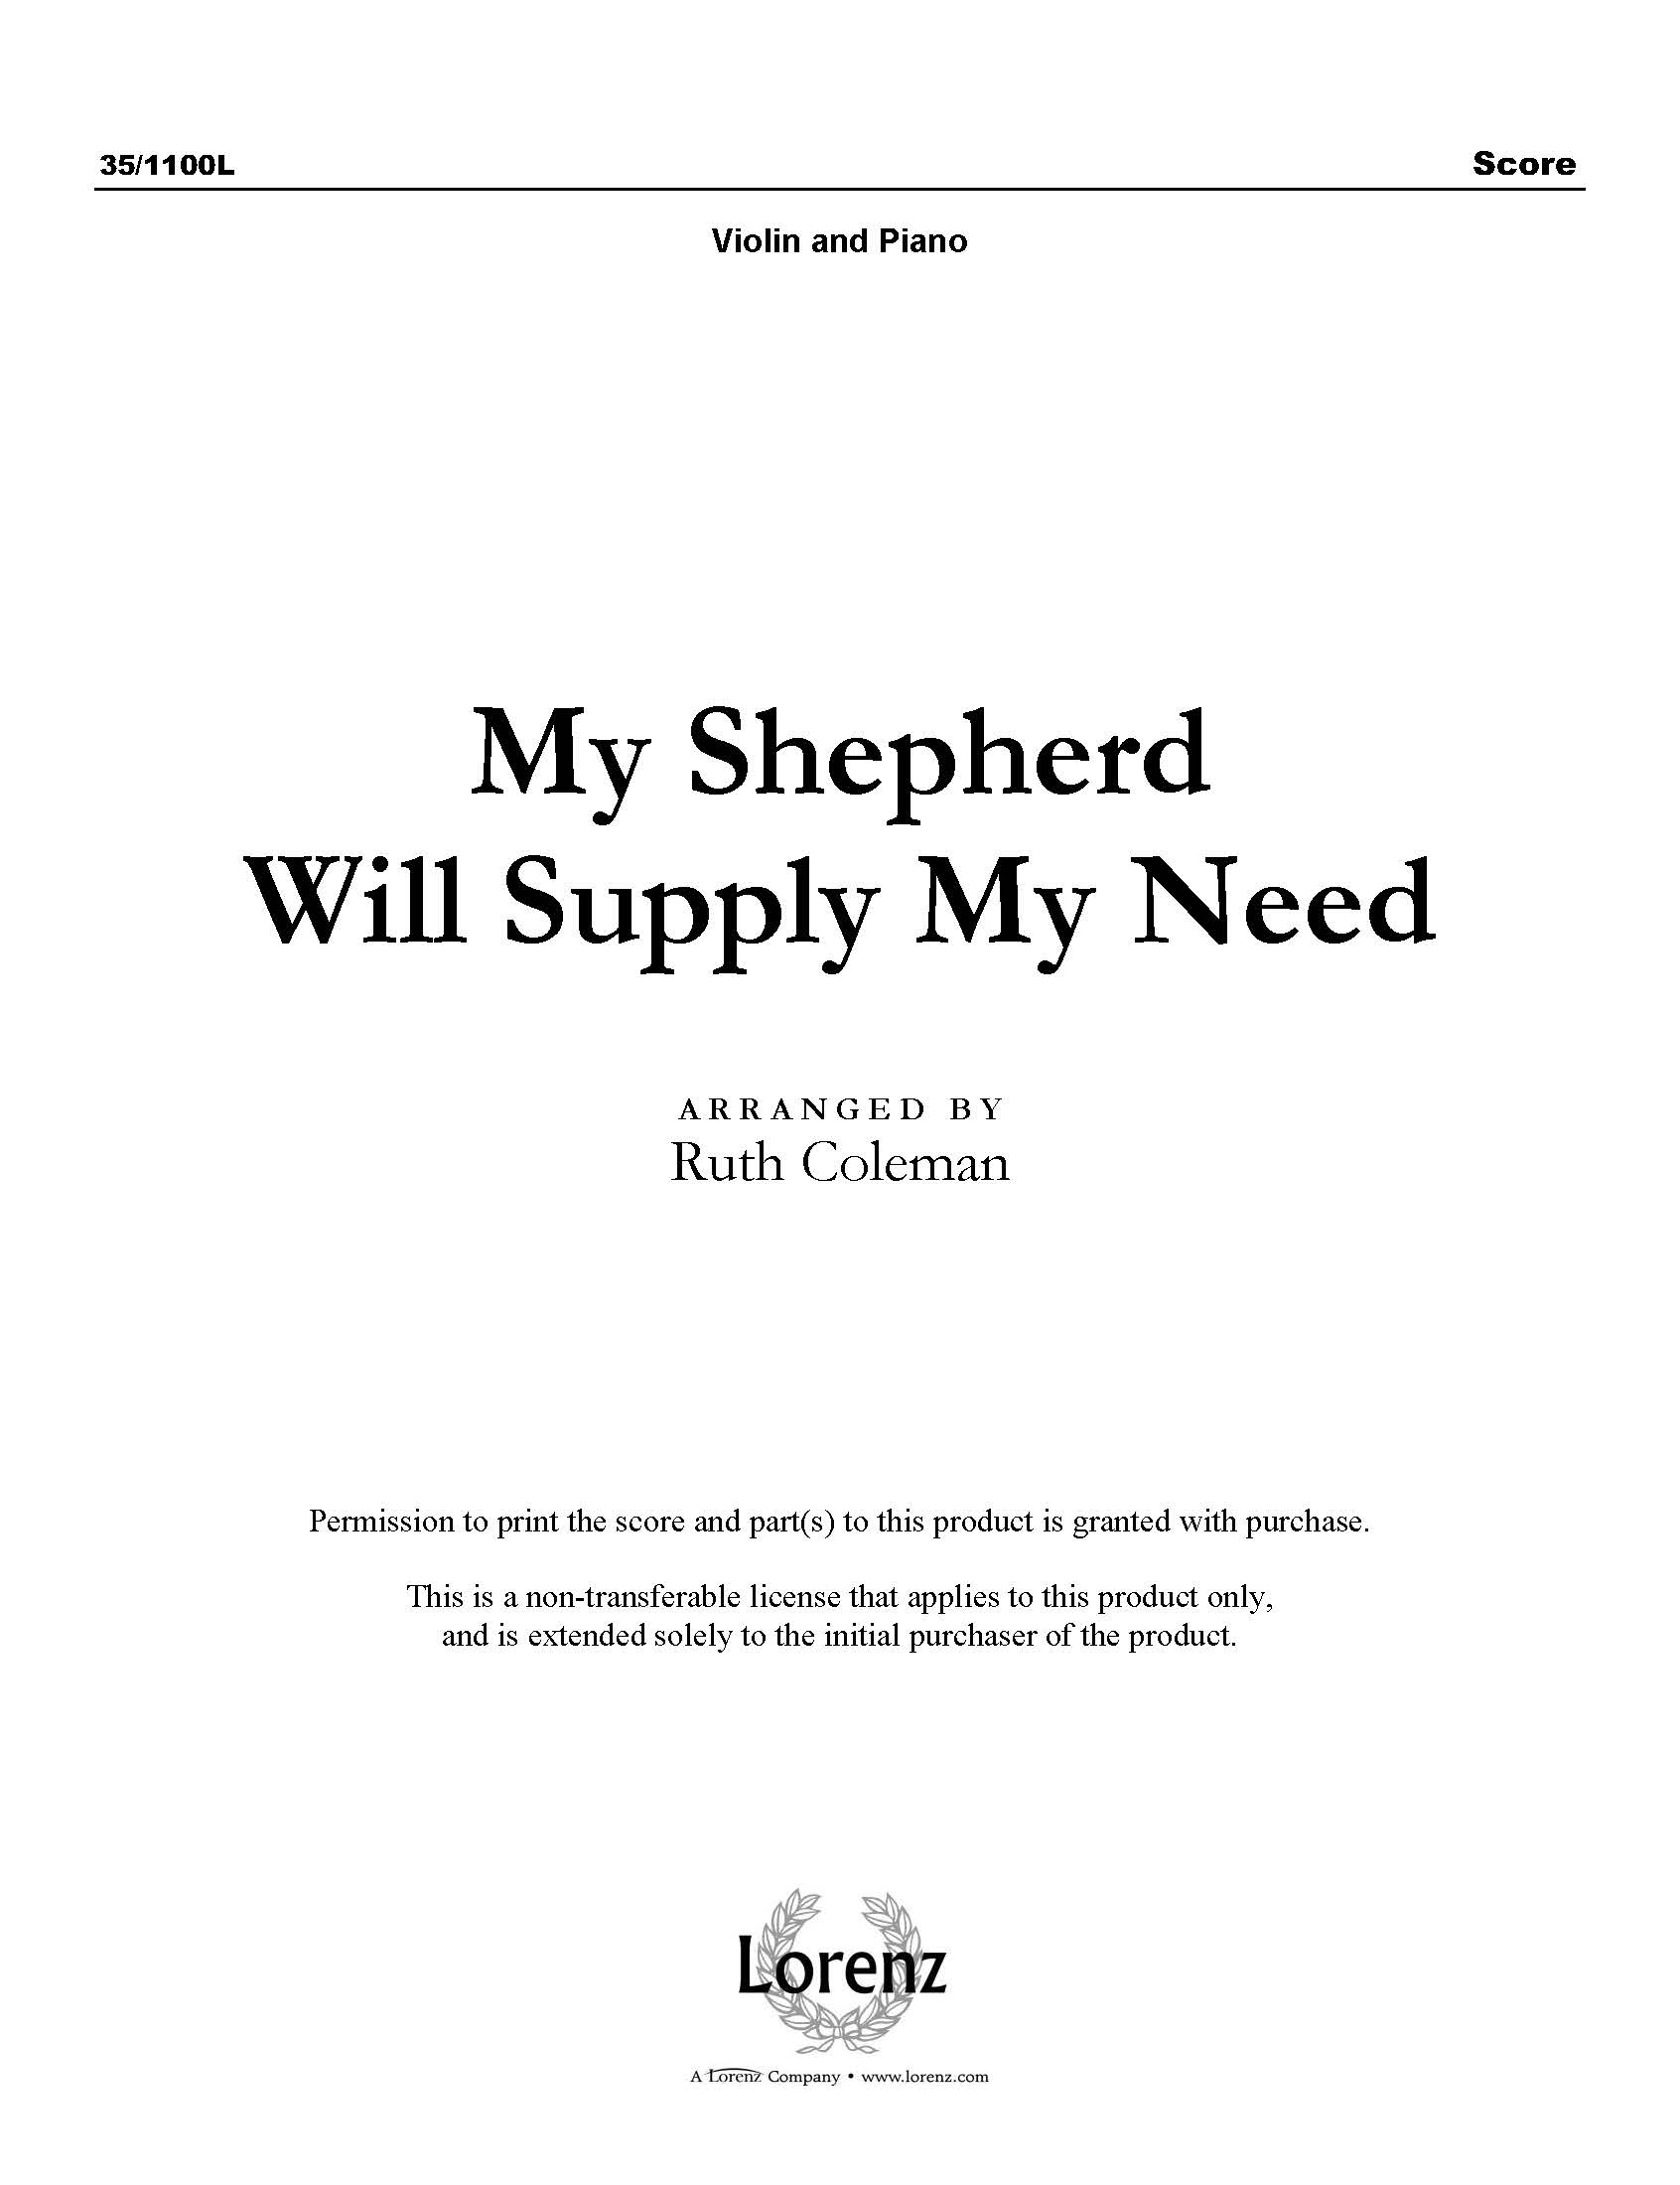 My Shepherd Will Supply My Need (Digital Delivery)